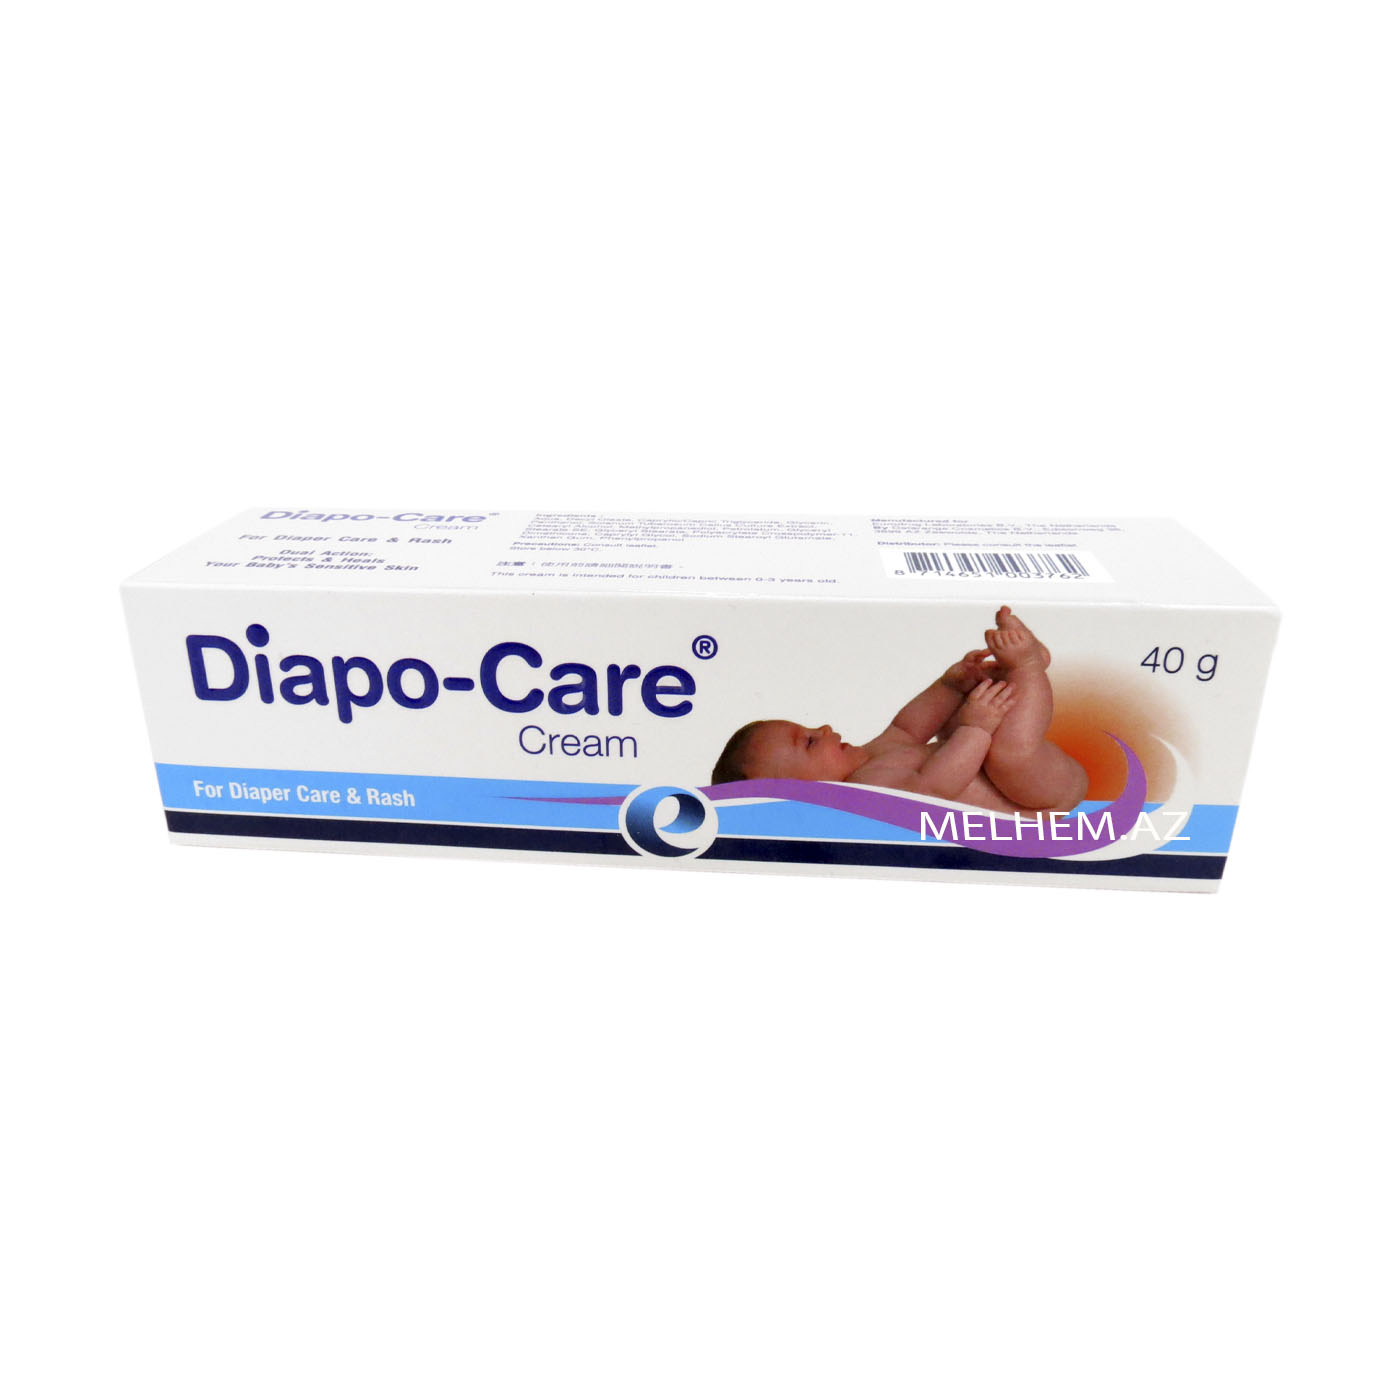 DİAPO-CARE 40 Q (KREM)